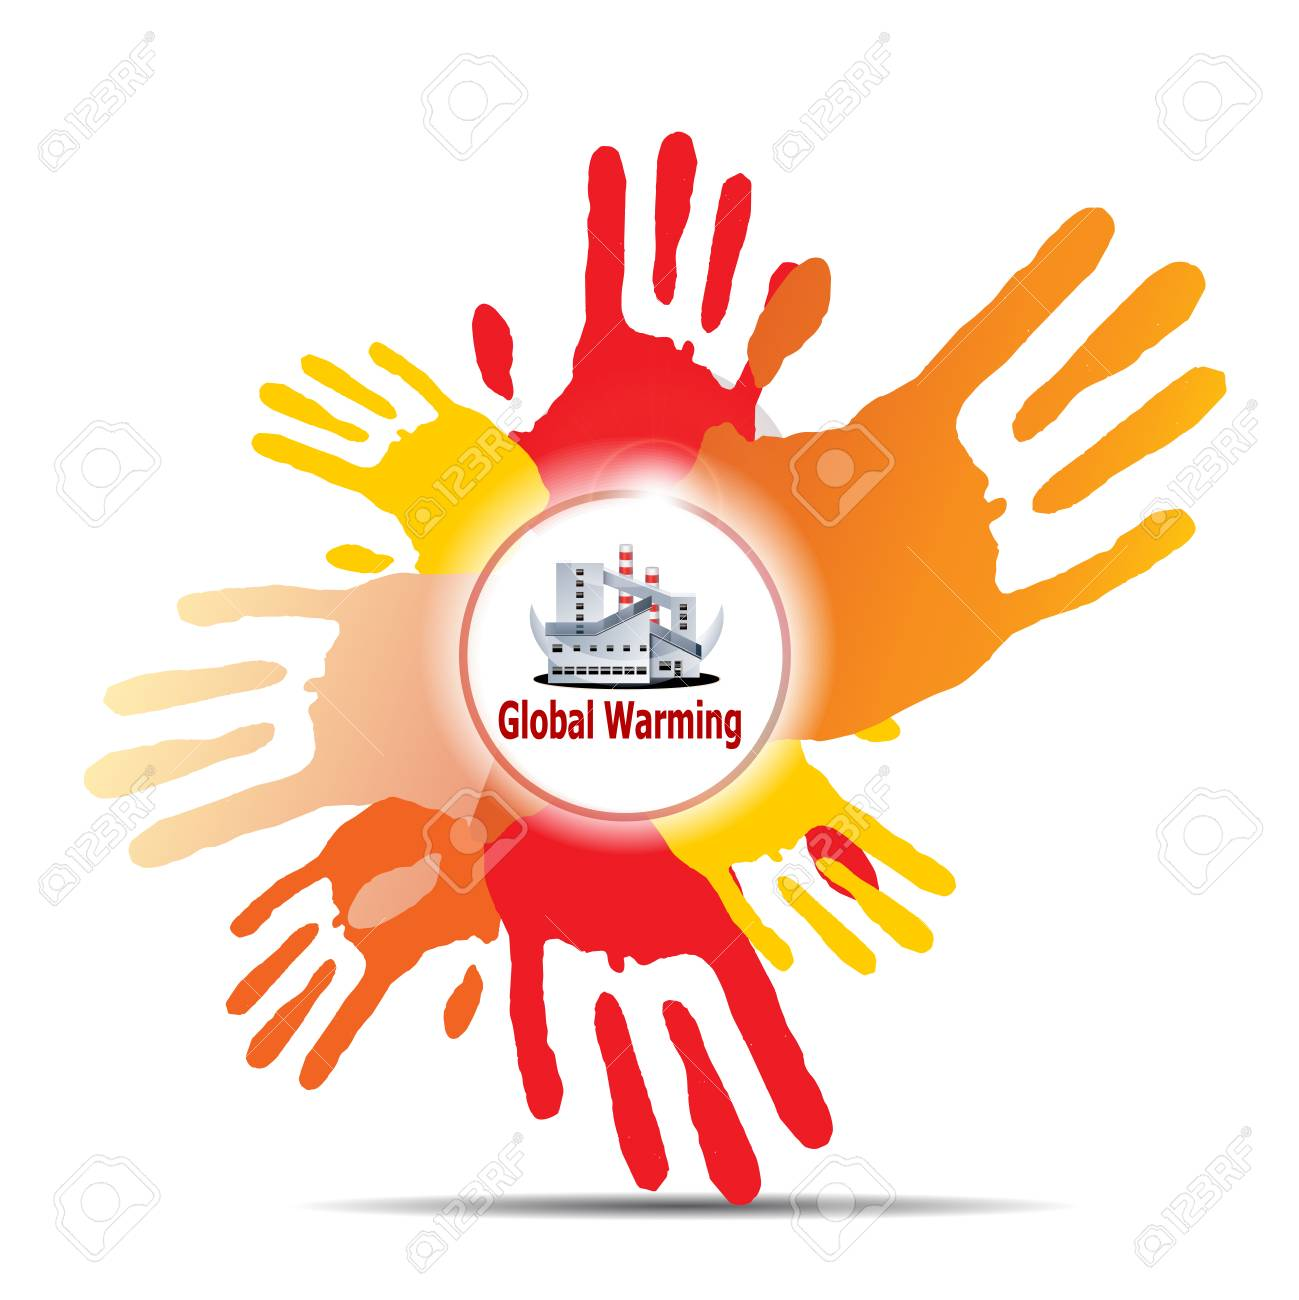 many hands and industry Stock Photo - 24465501